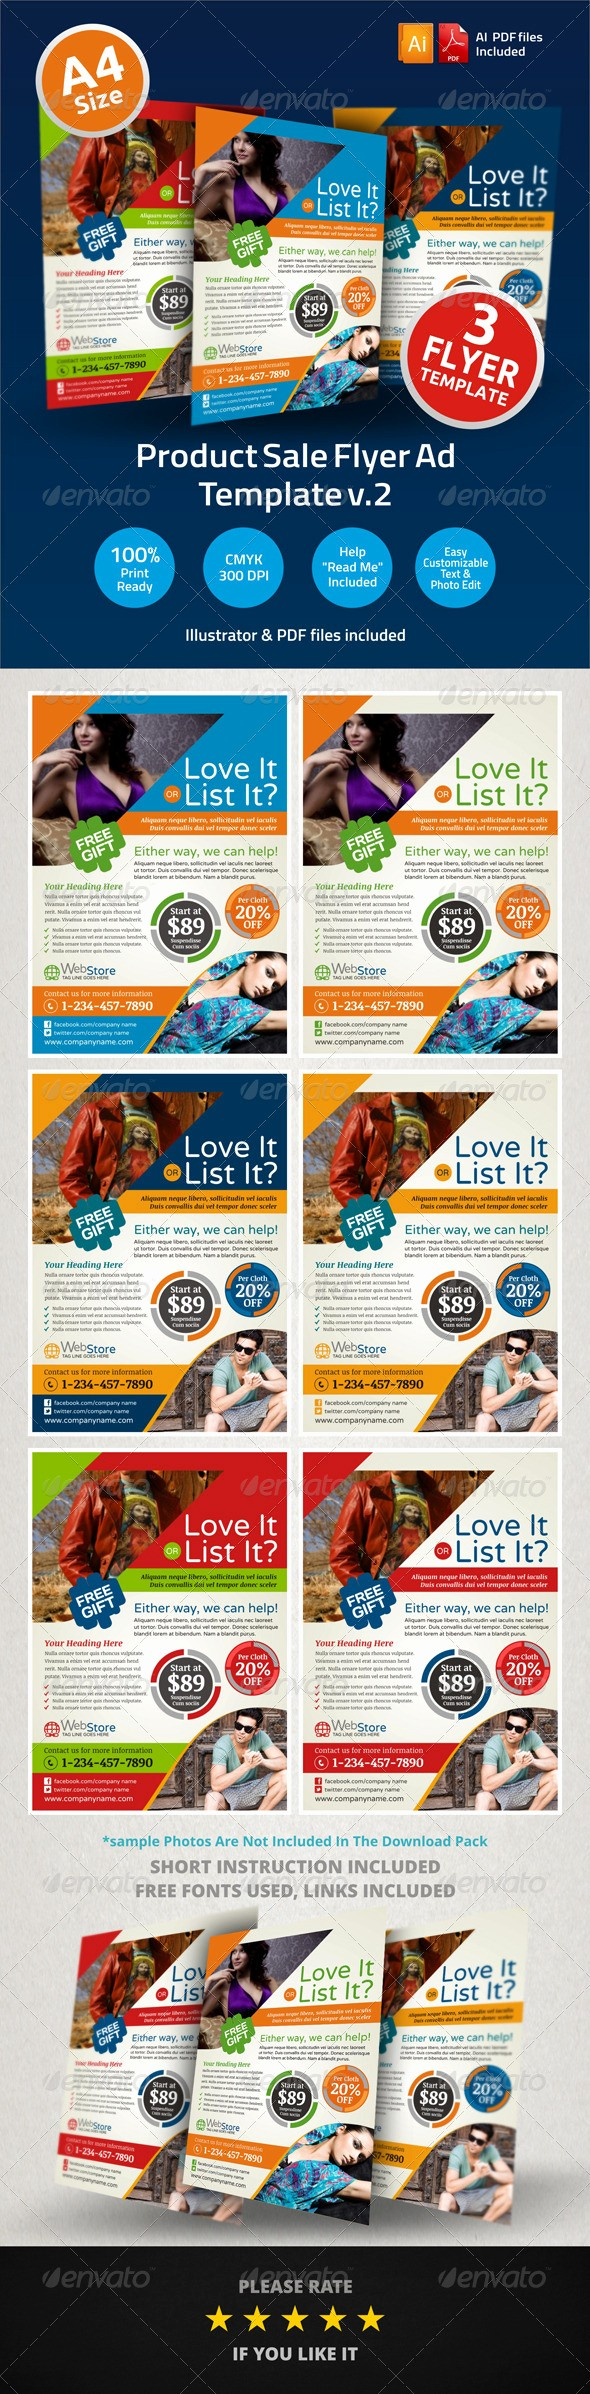 Puppies for Sale Flyer Template Beautiful Product Sale Flyer Ad Template V2